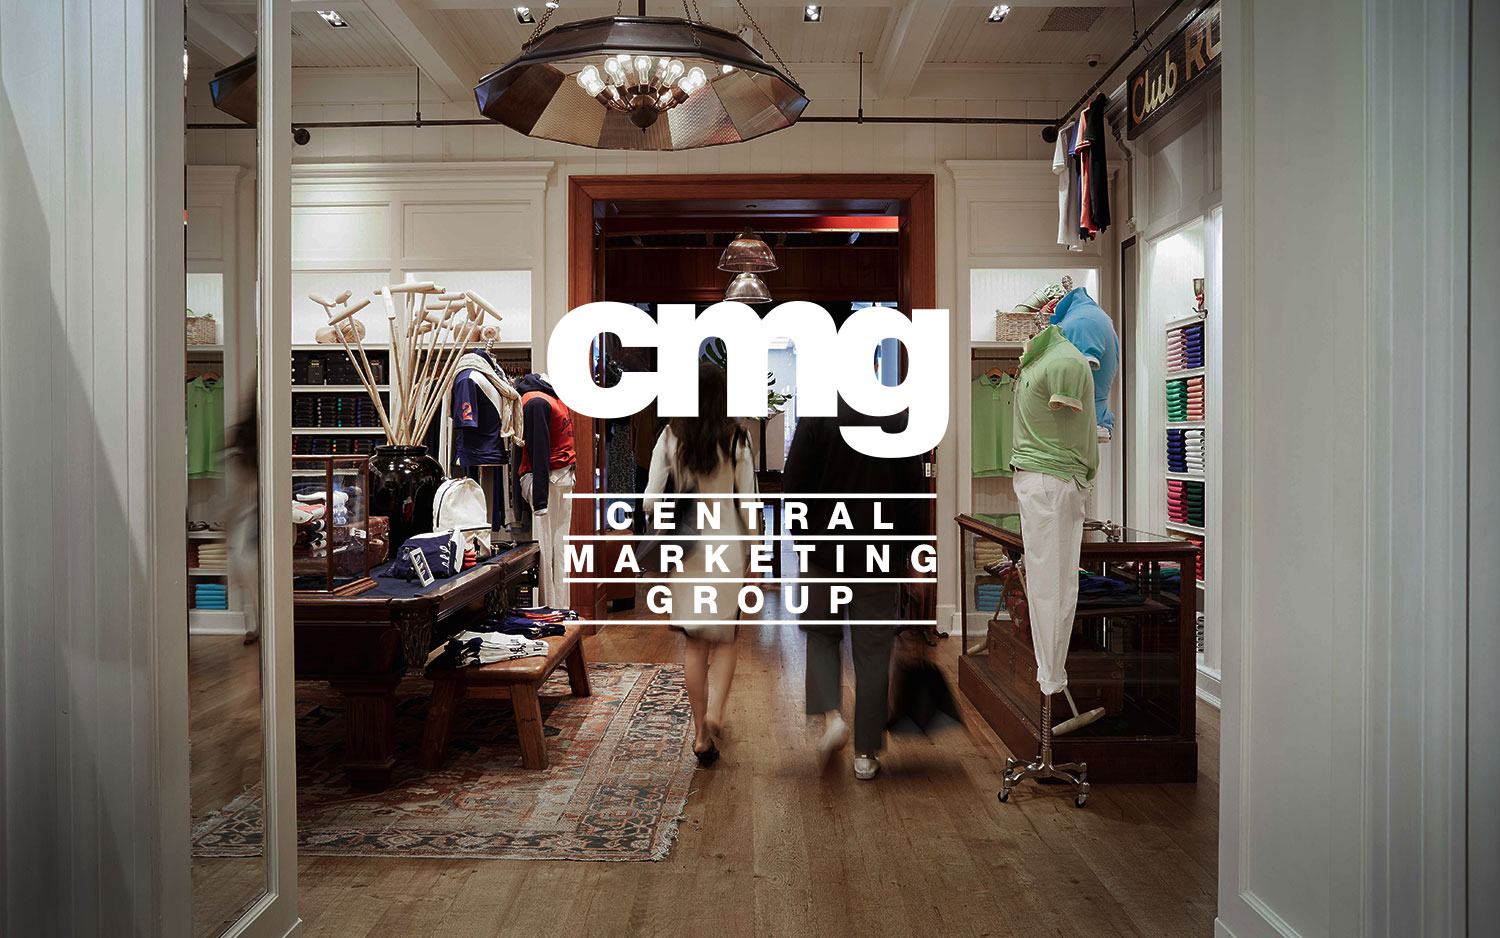 Central Marketing Group